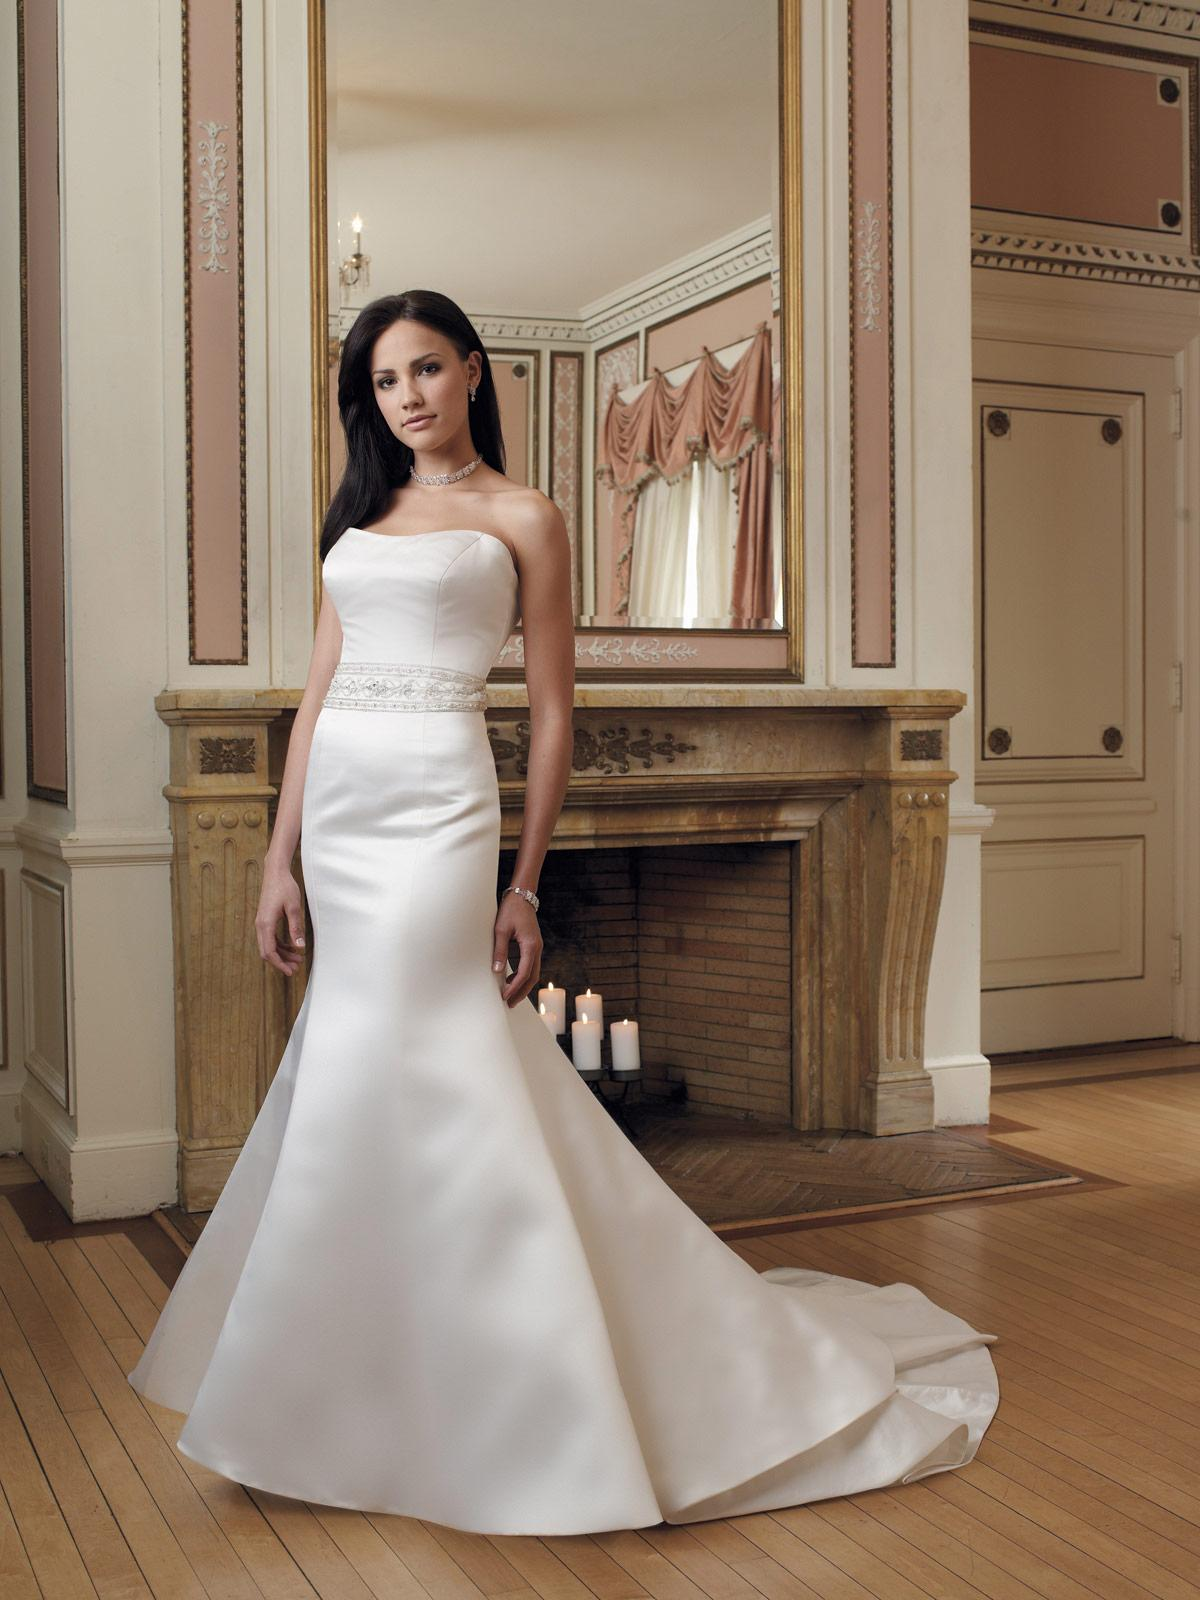 Elegant Bridal Gown, Wedding